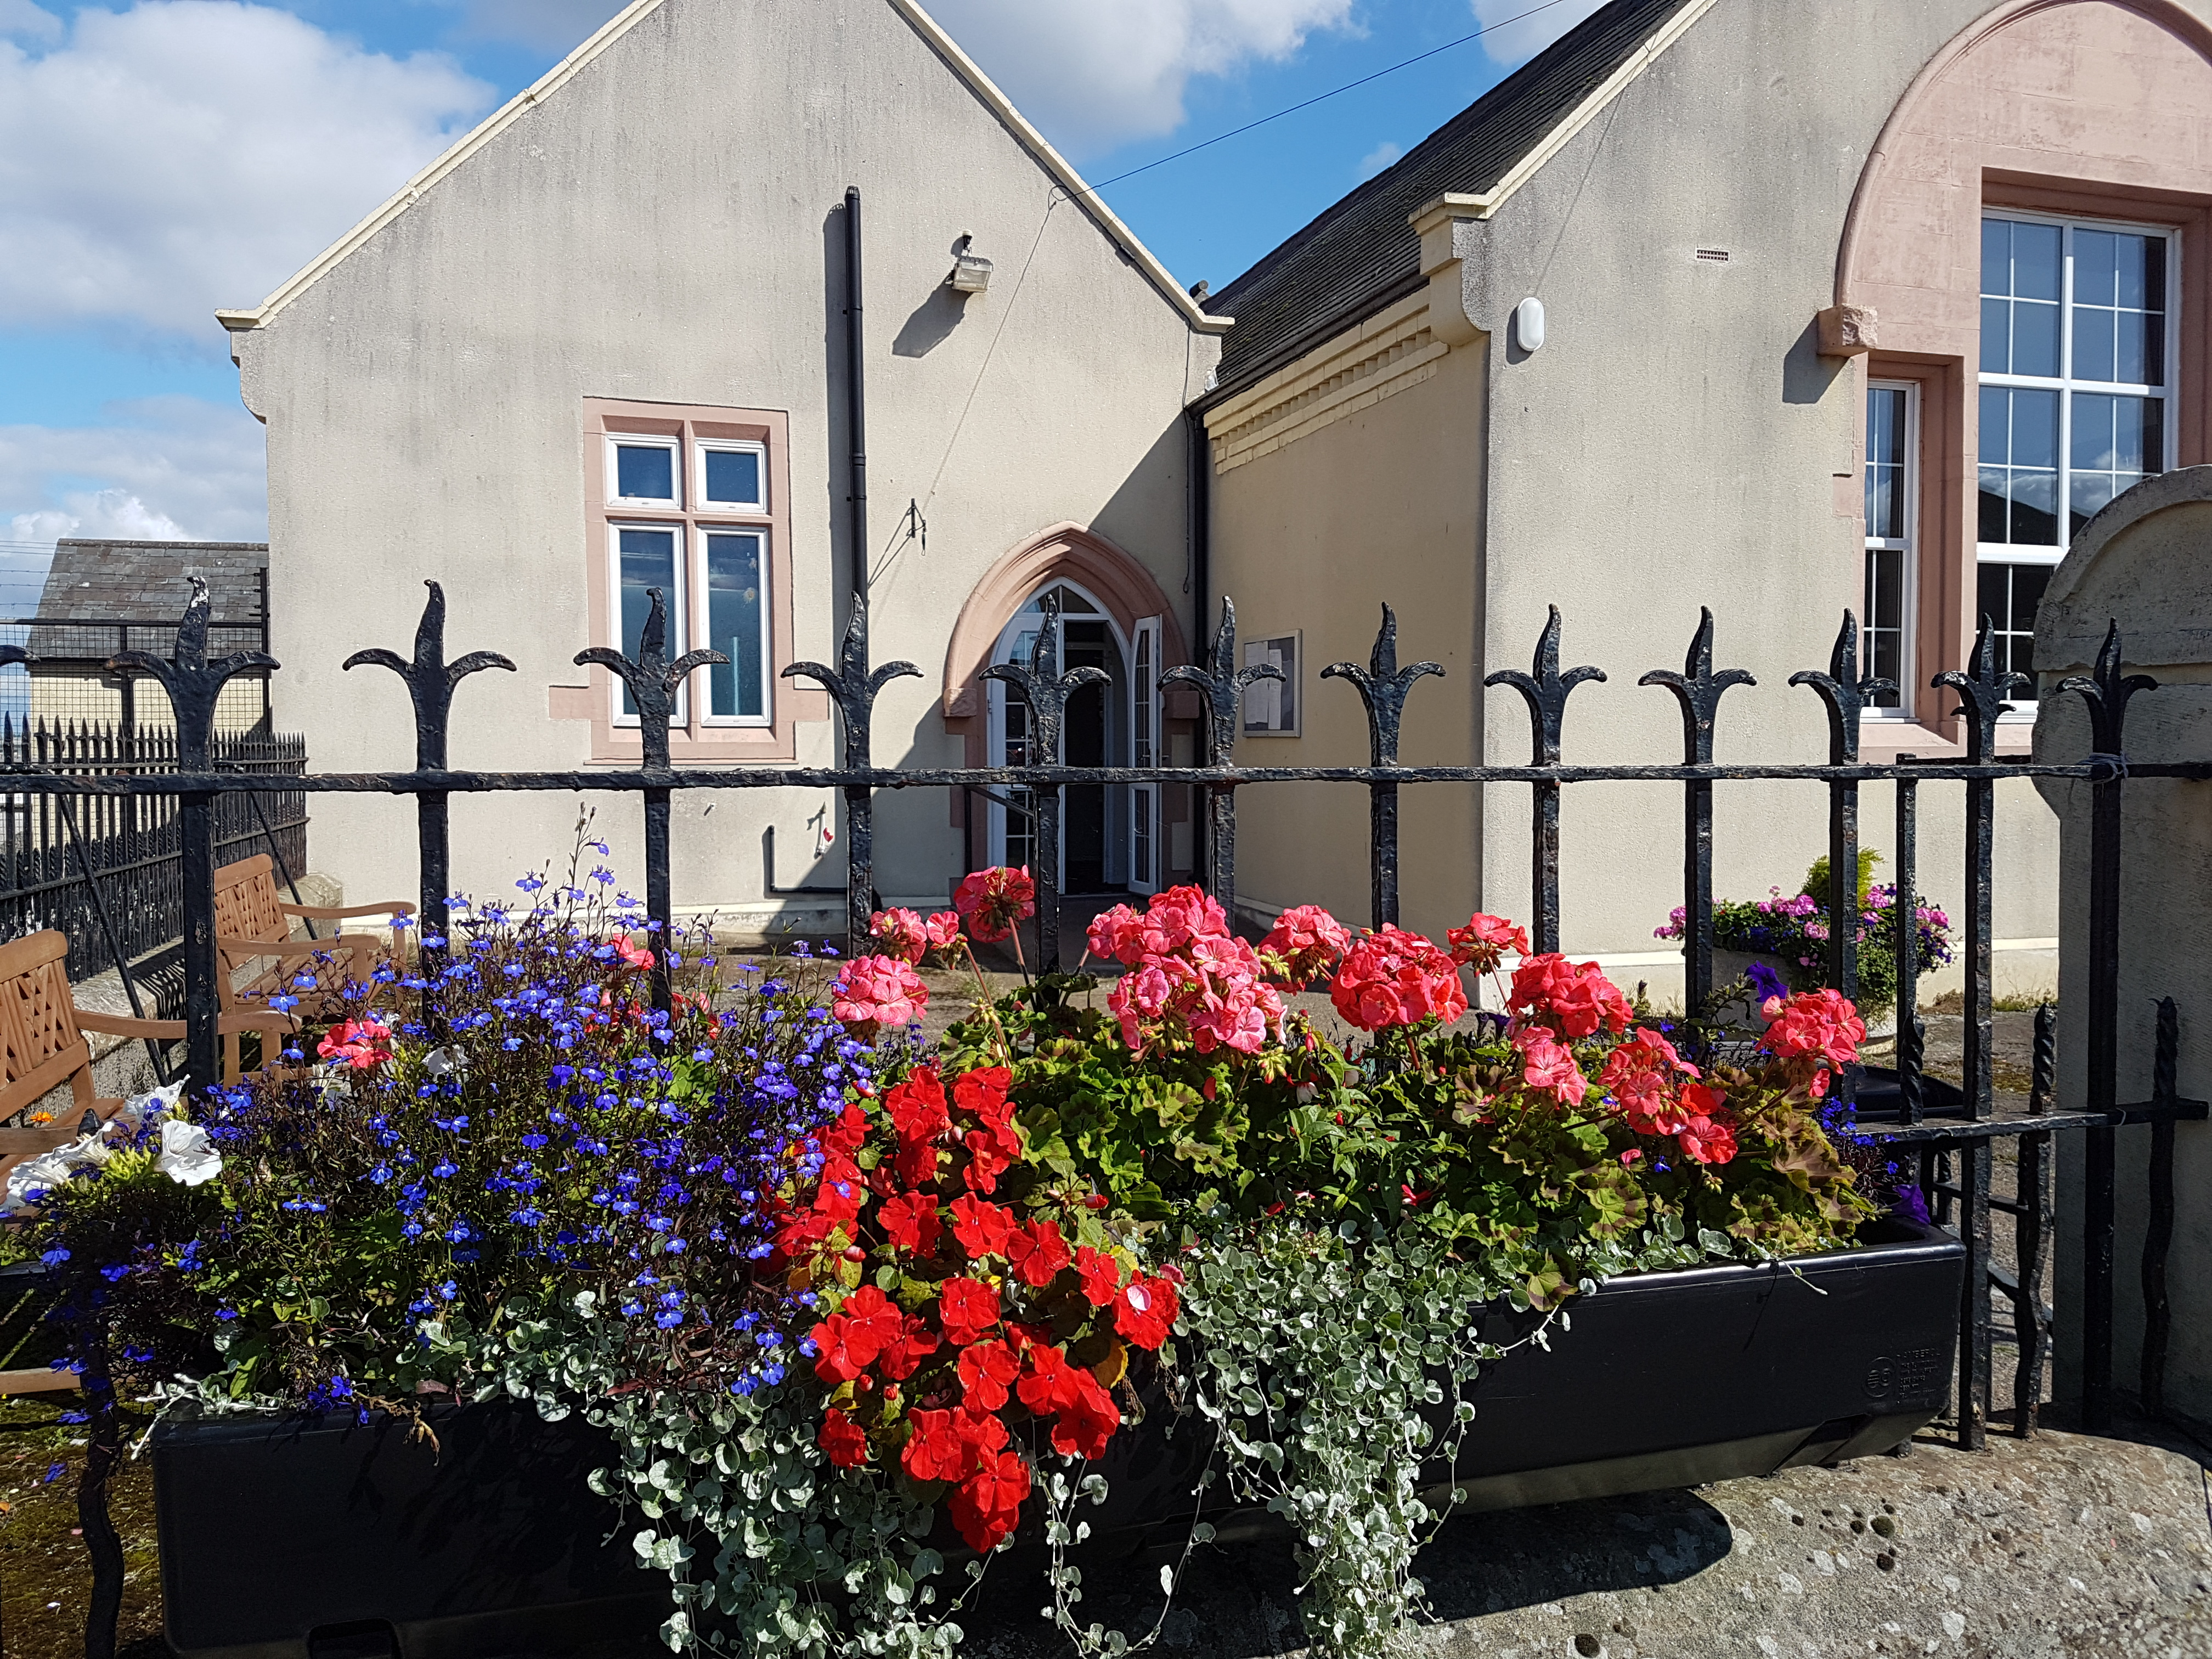 A little bit of summer at the Community Hall